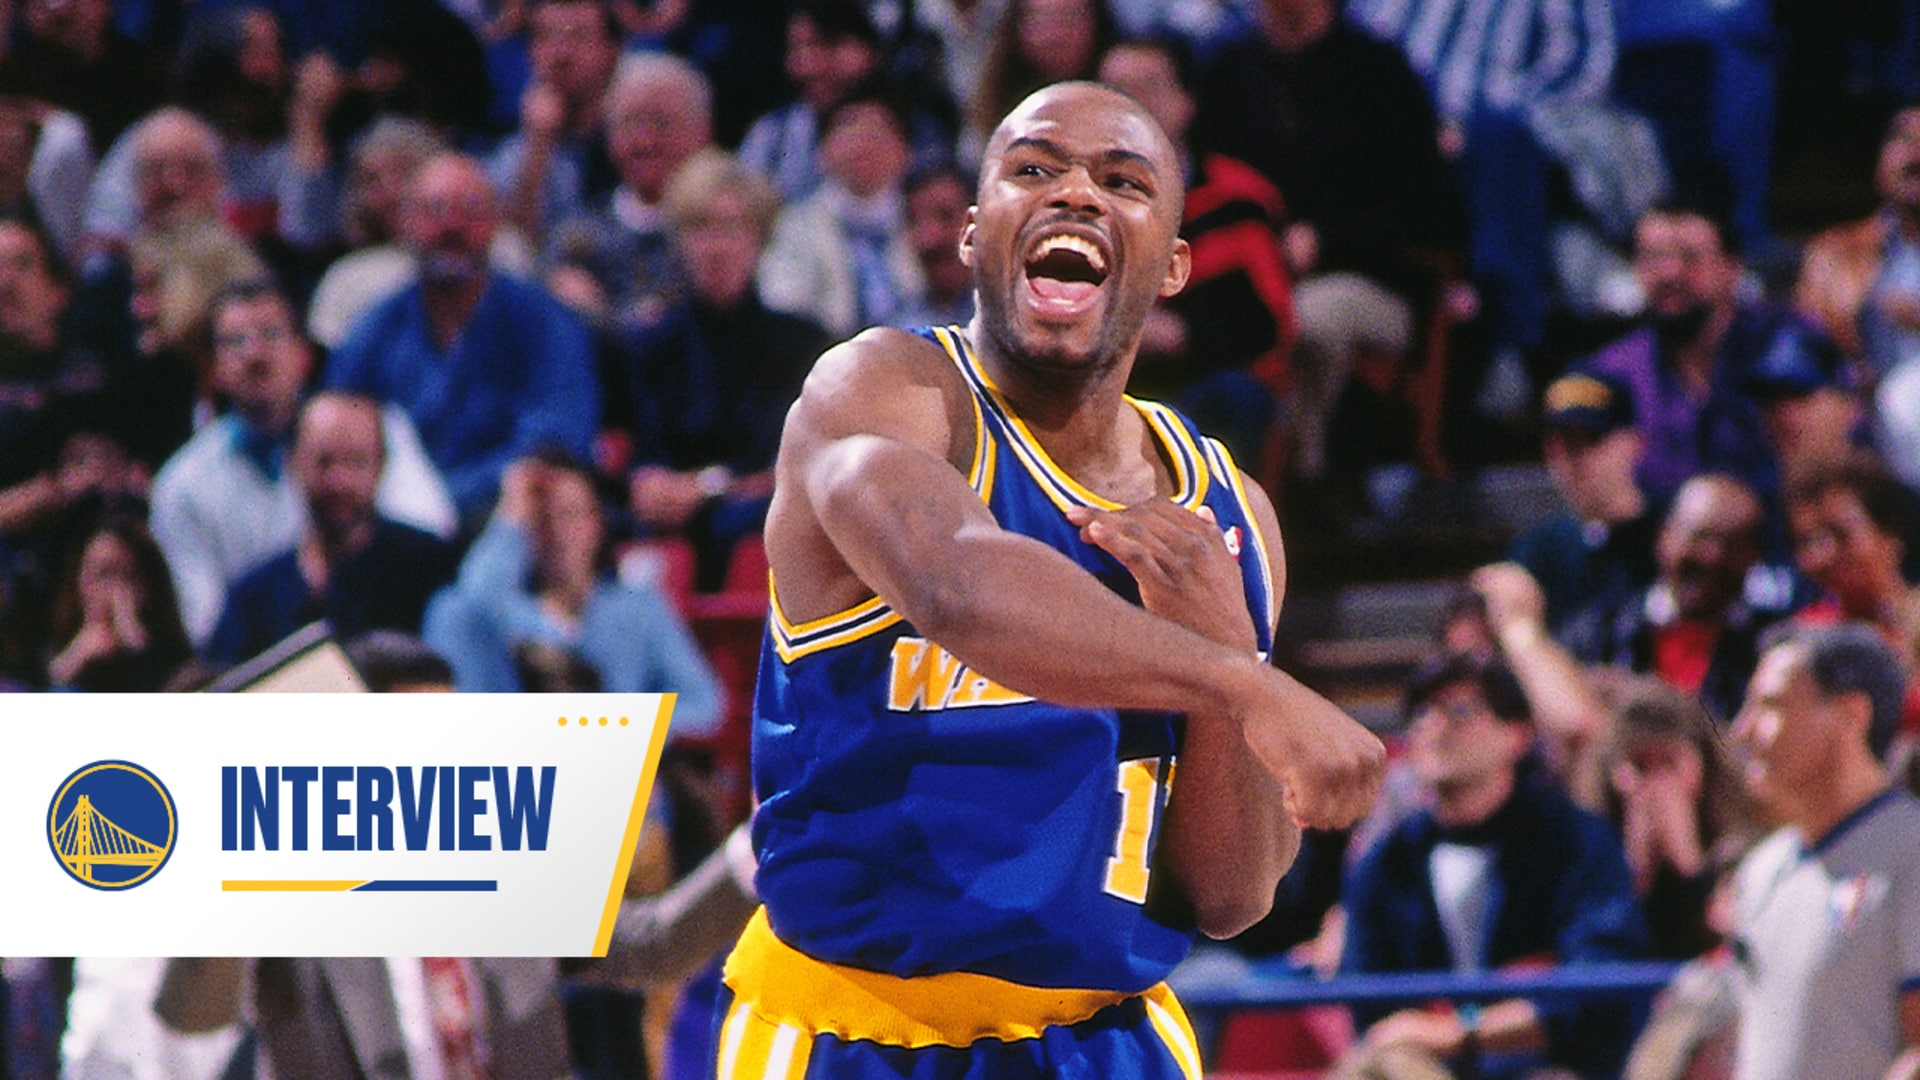 Virtual Happy Hour with Tim Hardaway, Presented by Michelob Ultra